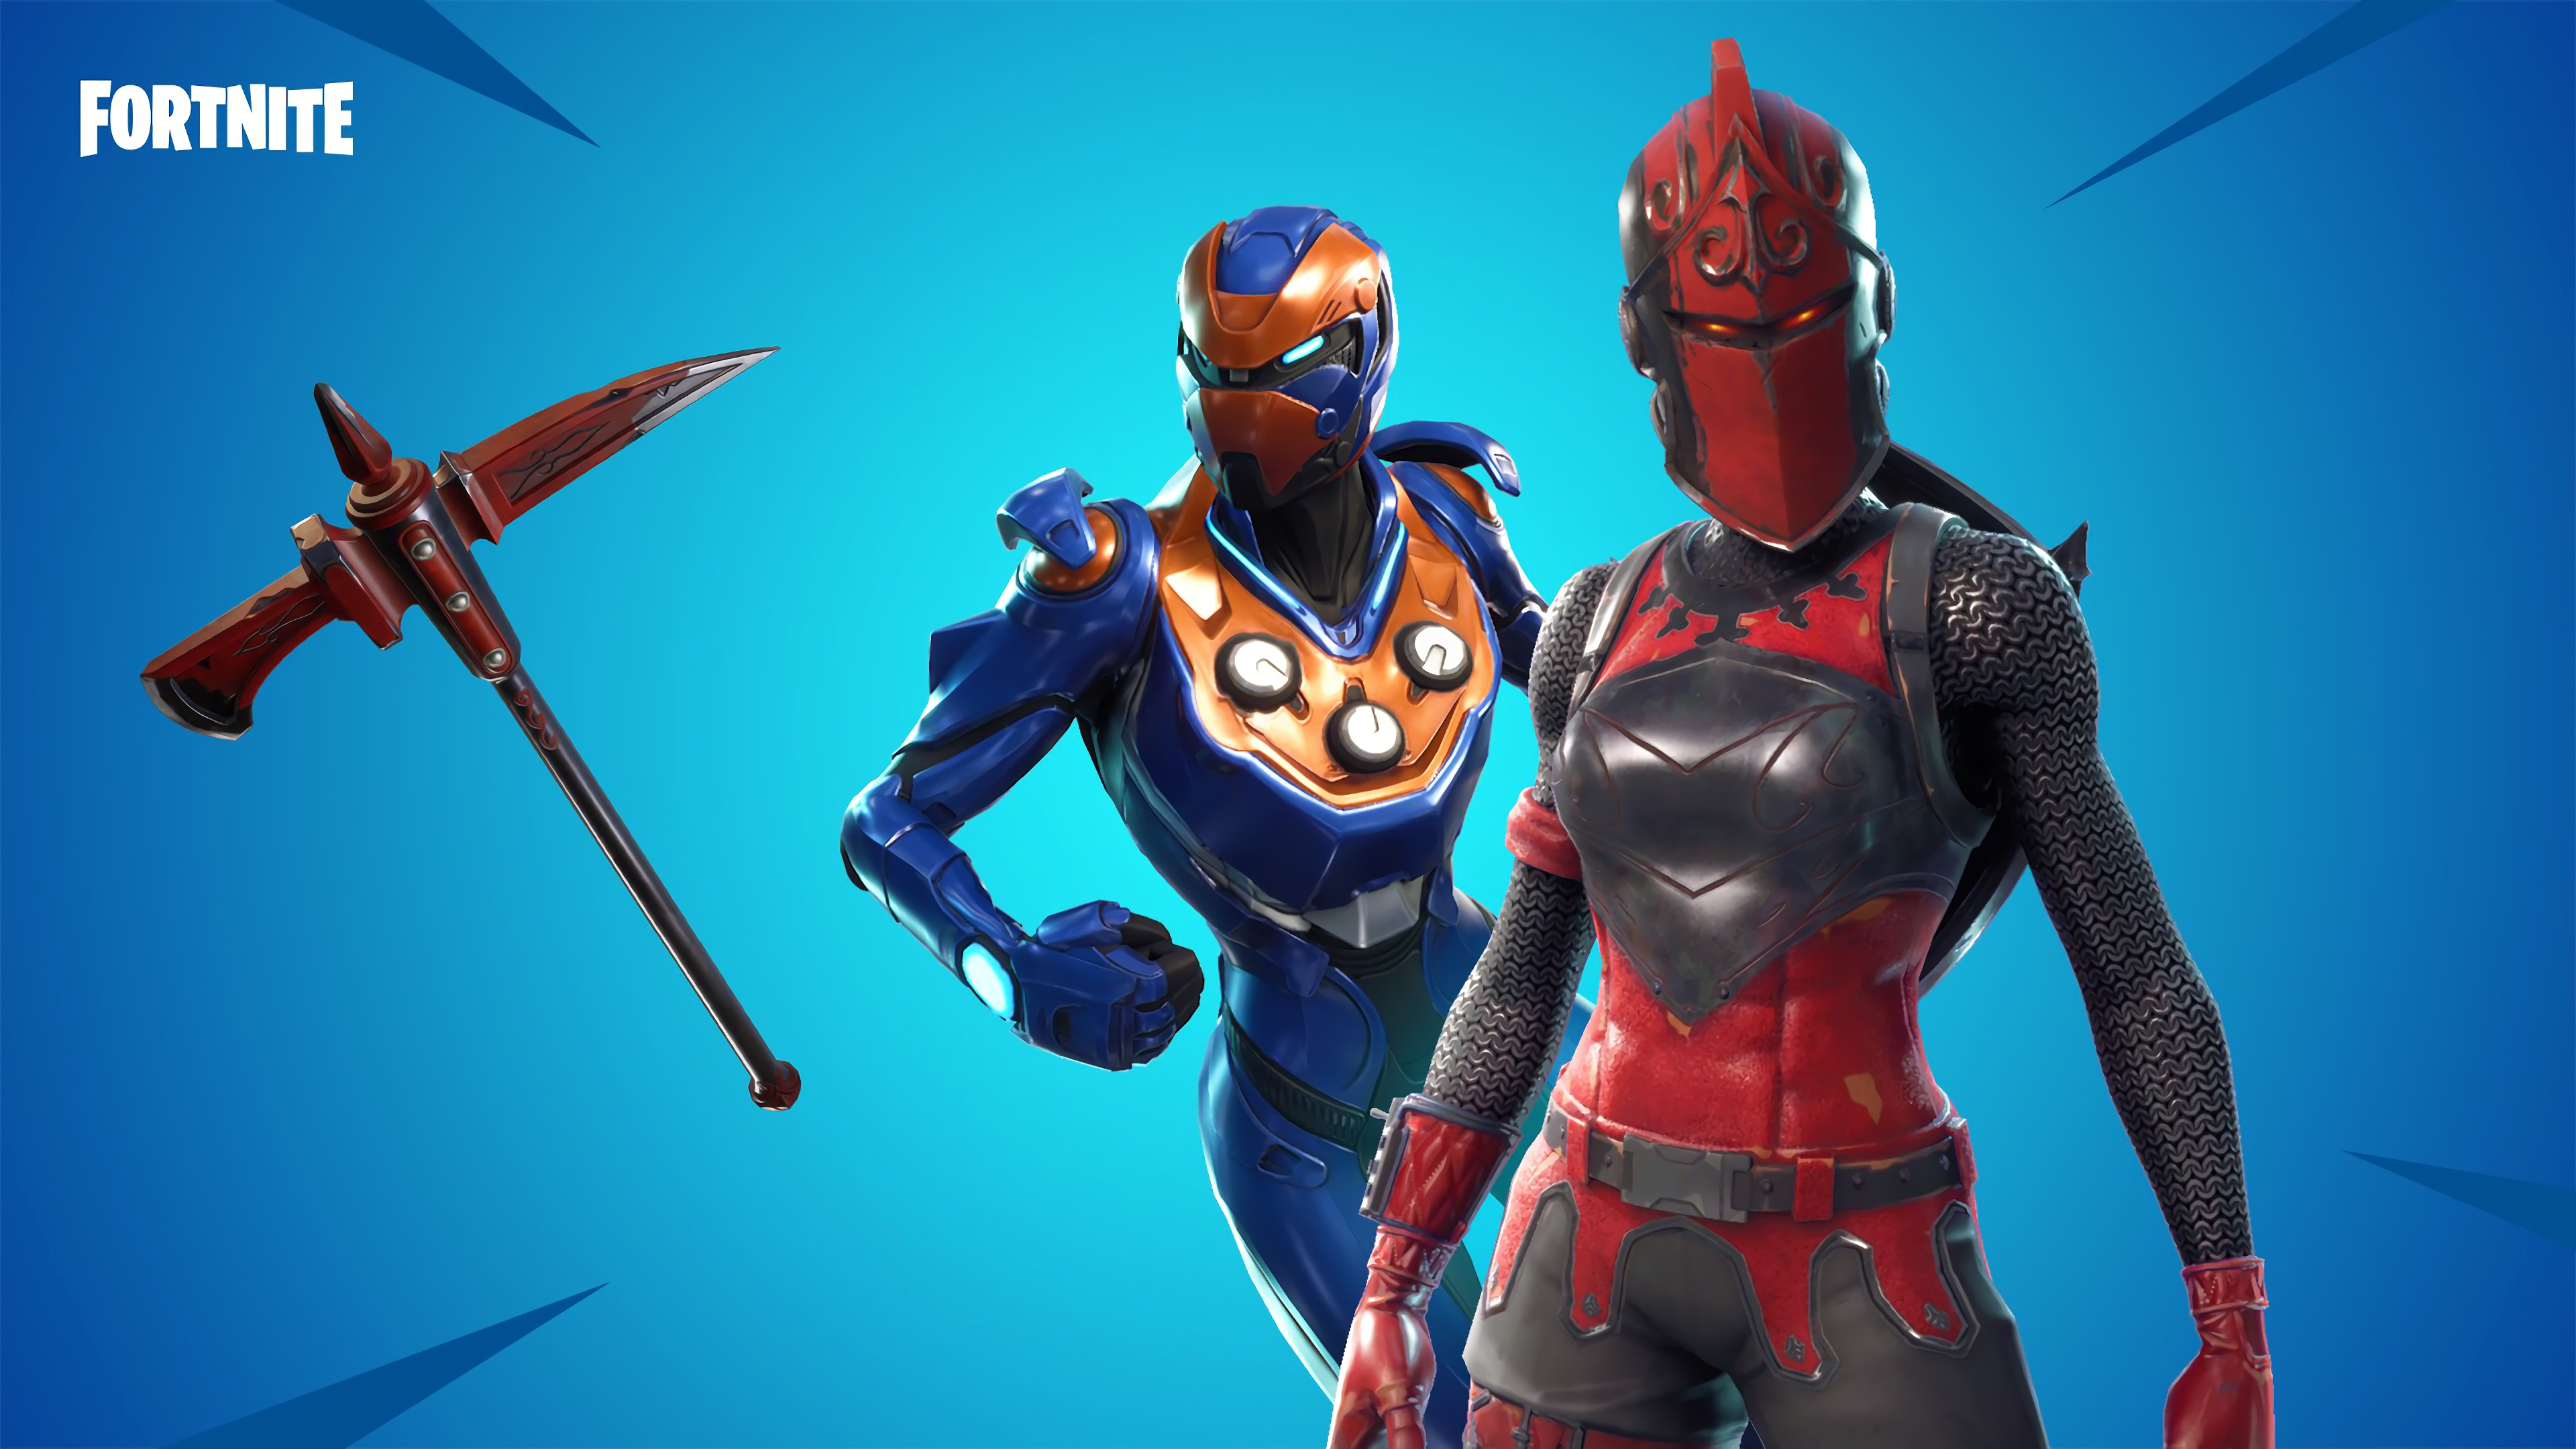 Red Knight and Criterion Fortnite Battle Royale 4K 17576 3840x2160